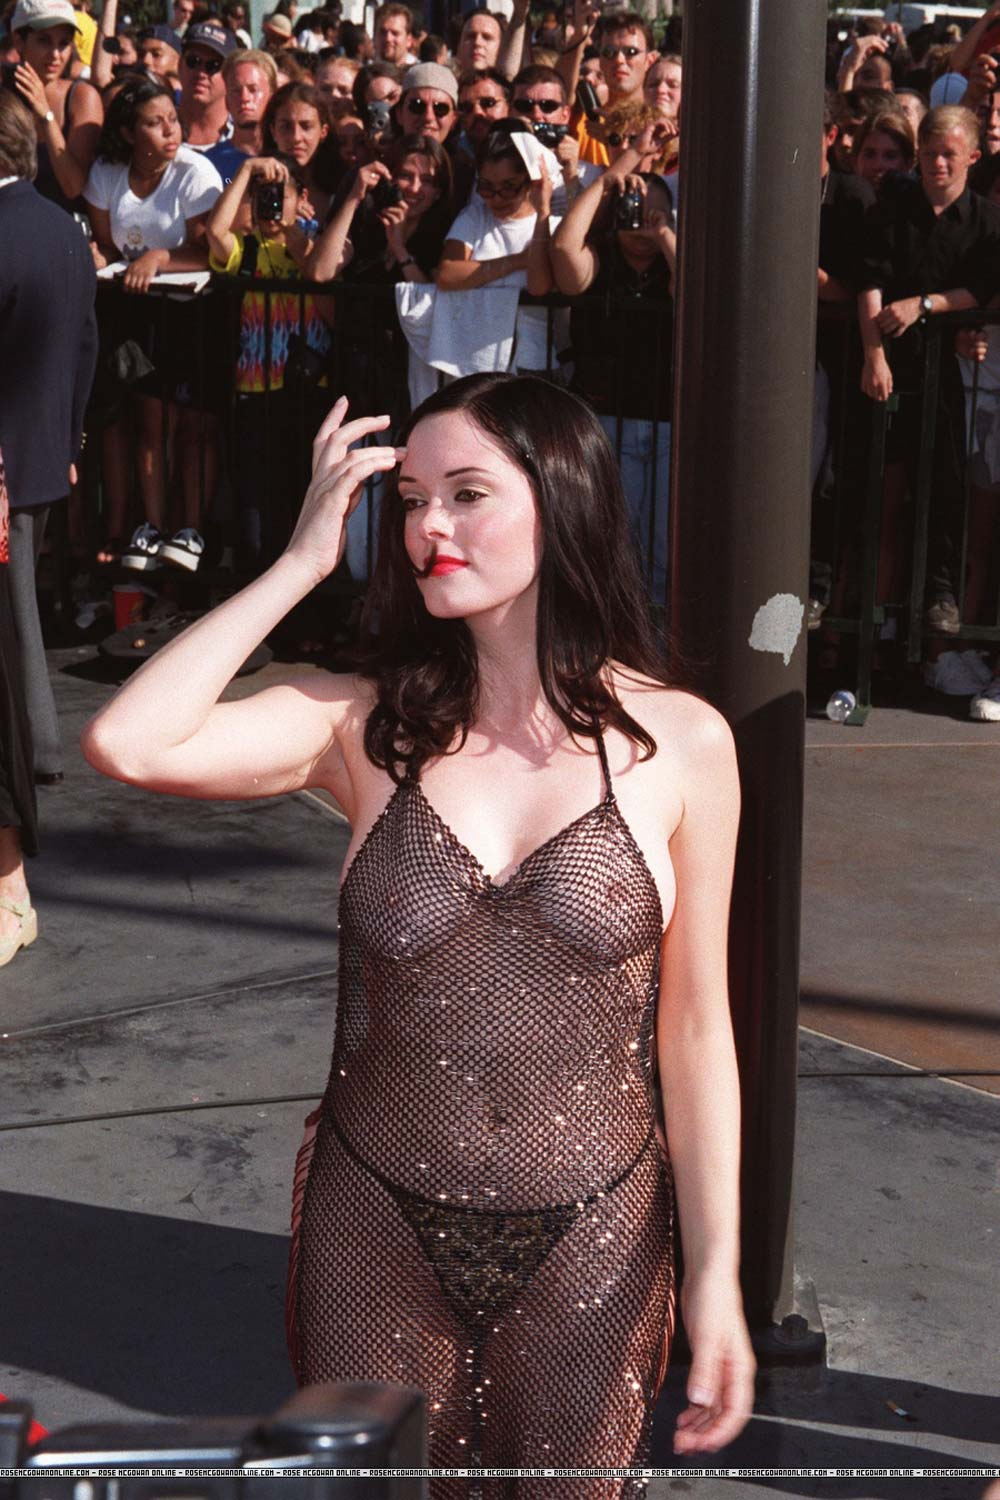 nasty and hot photos of rose mcgowan